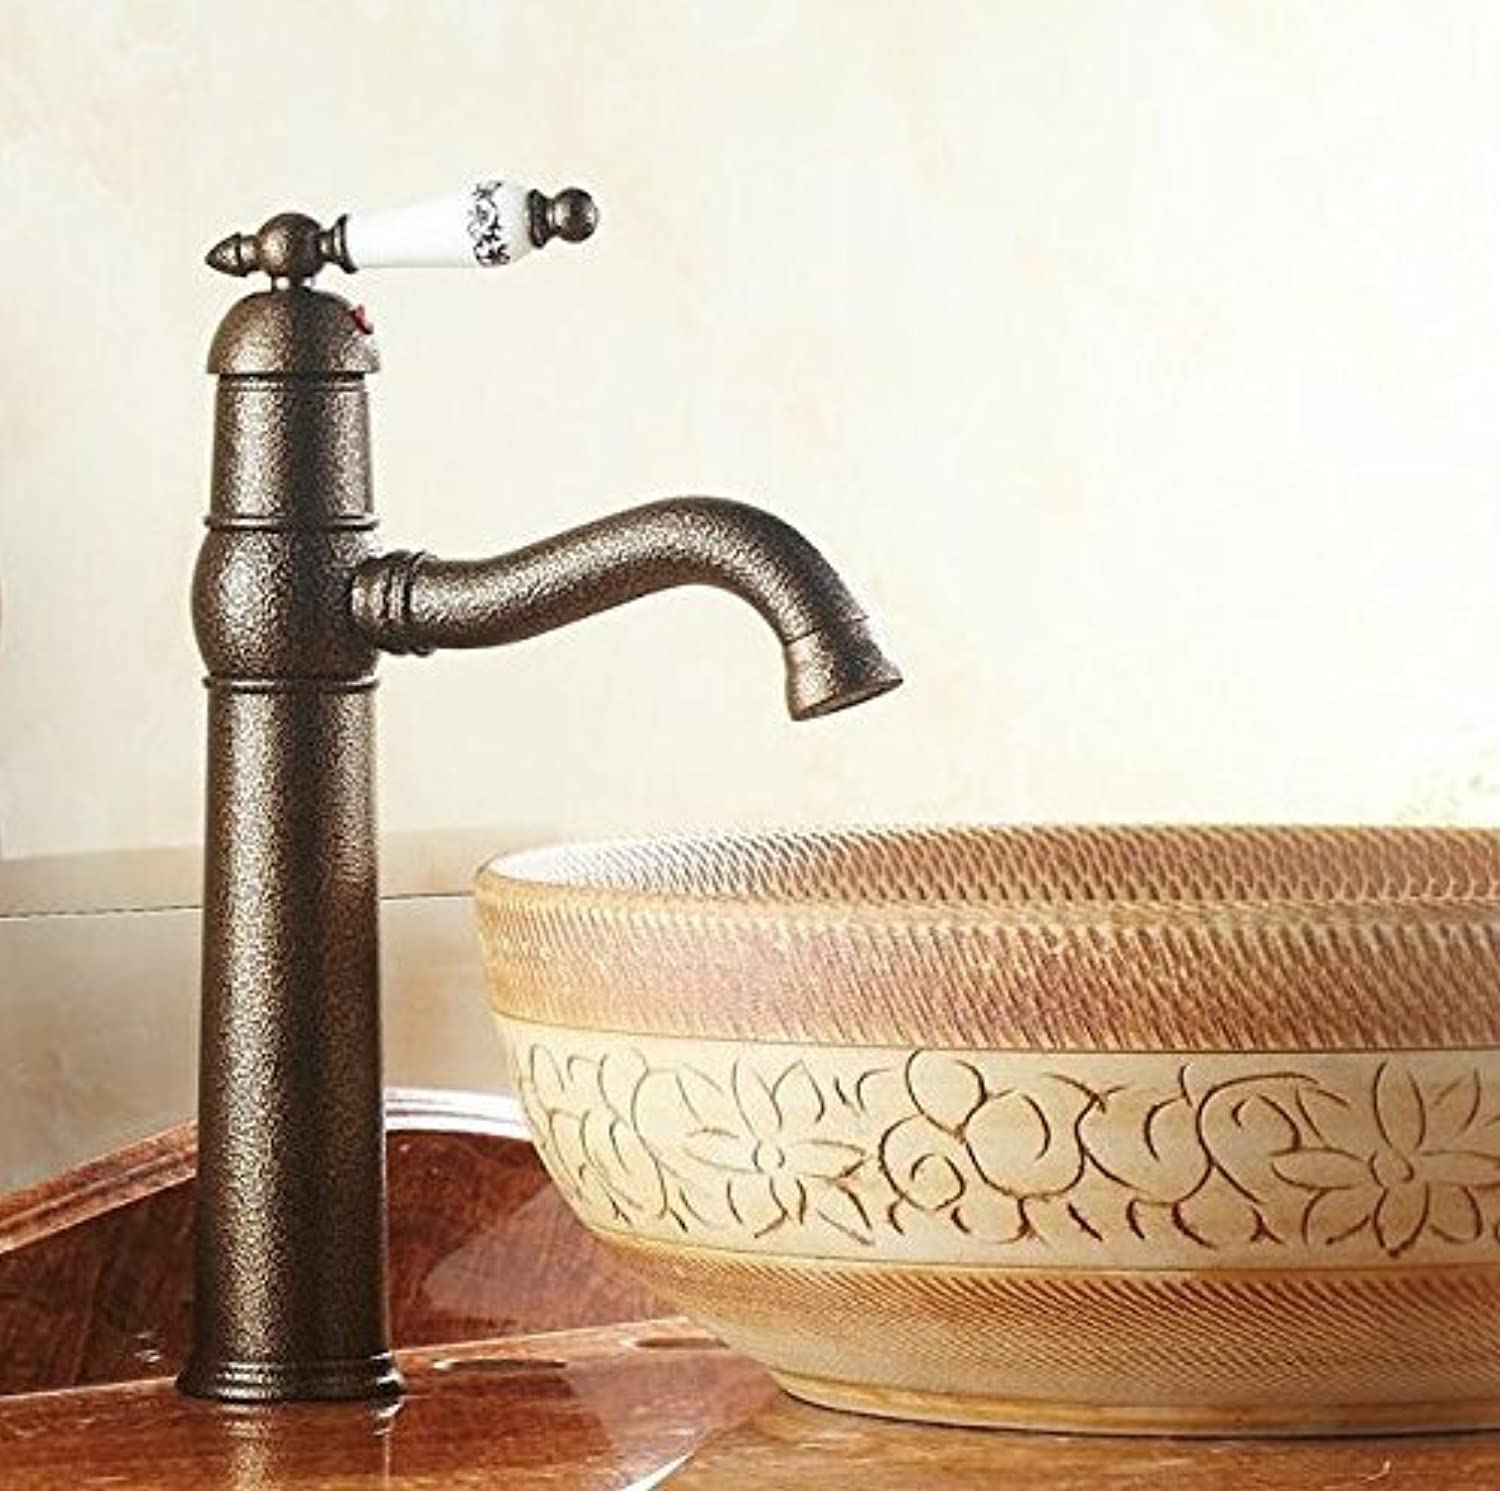 Diongrdk Antique Brass Bathroom Faucet with Ceramic Handle Basin Mixer Tap Hot and Cold Tap